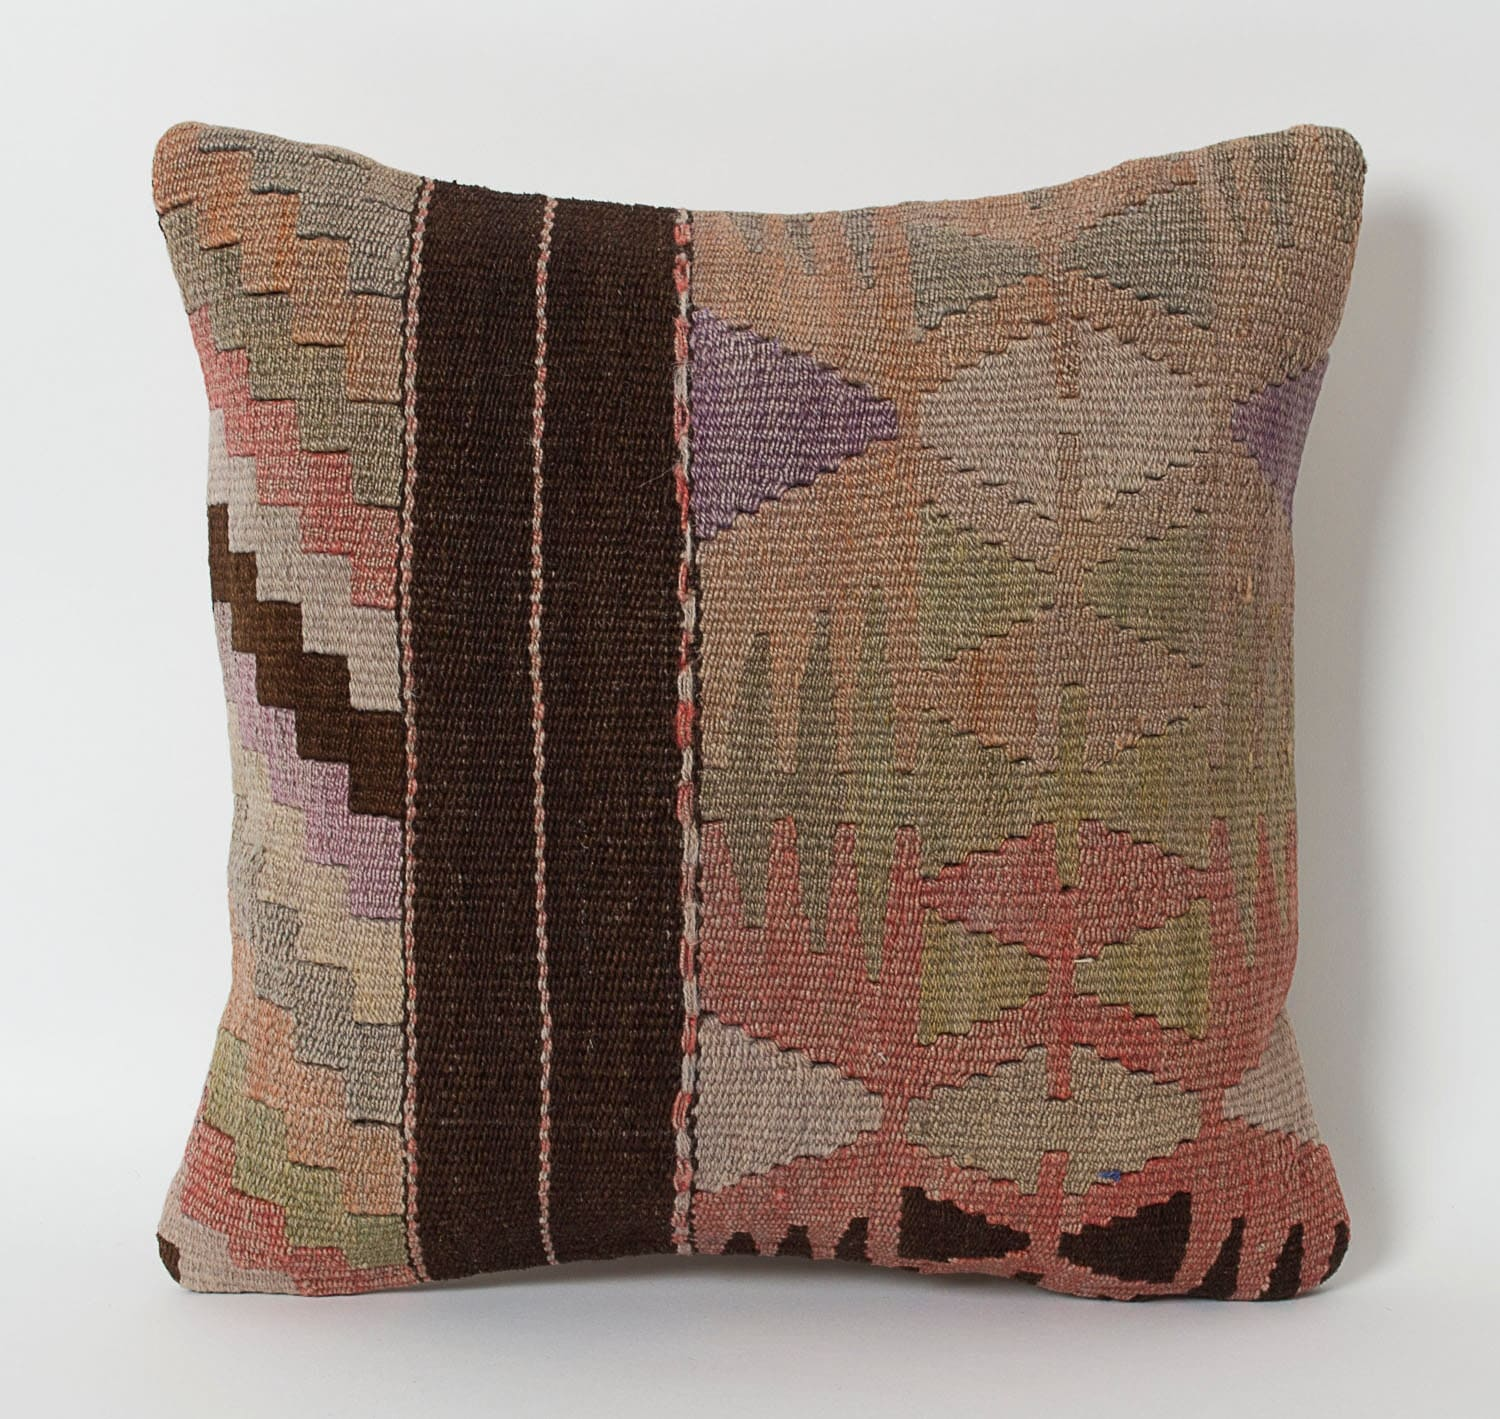 Vintage Kilim Pillows Decorative Throw Boho Kilim Cushion